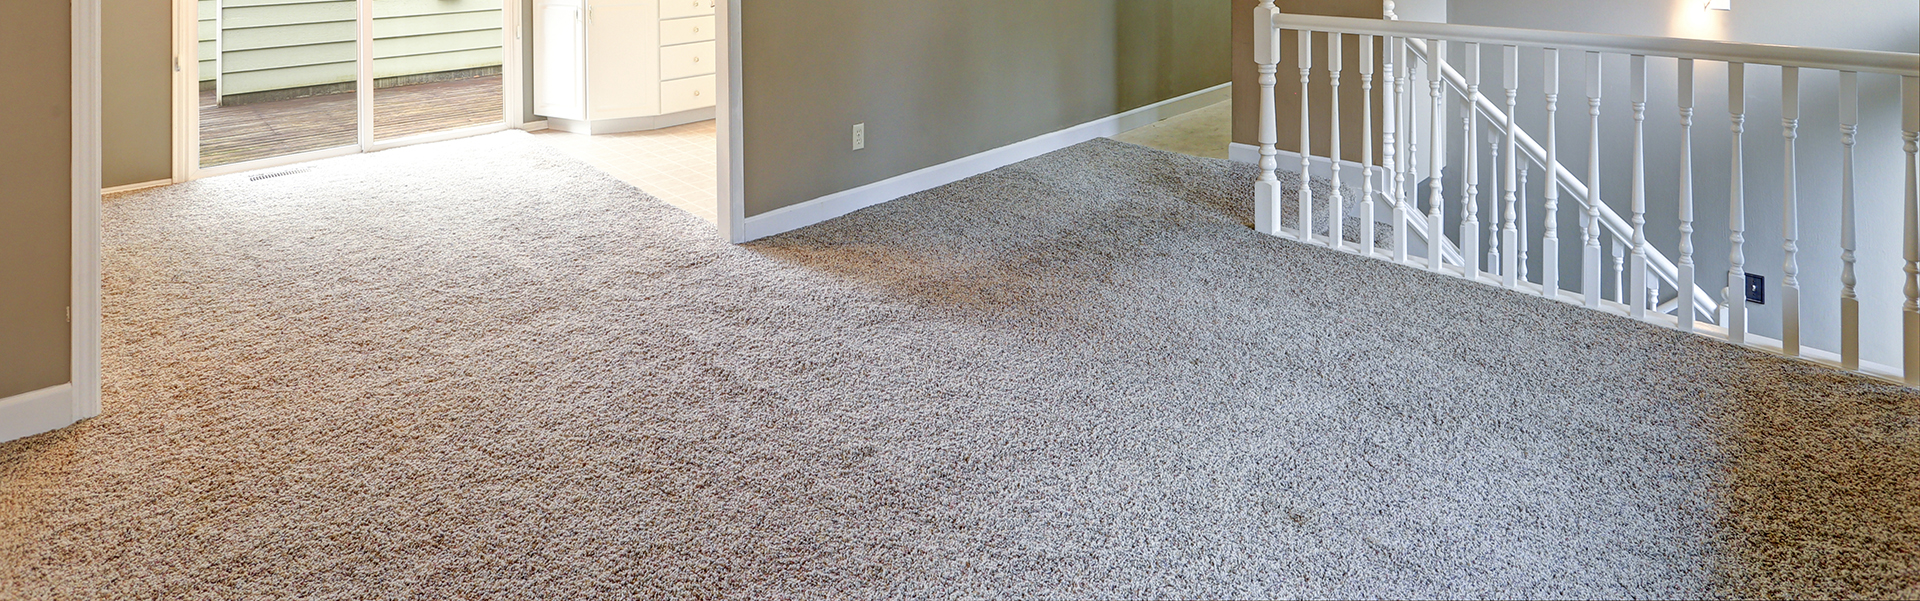 carpet-cleaning-company-in-falkirk-slider-image